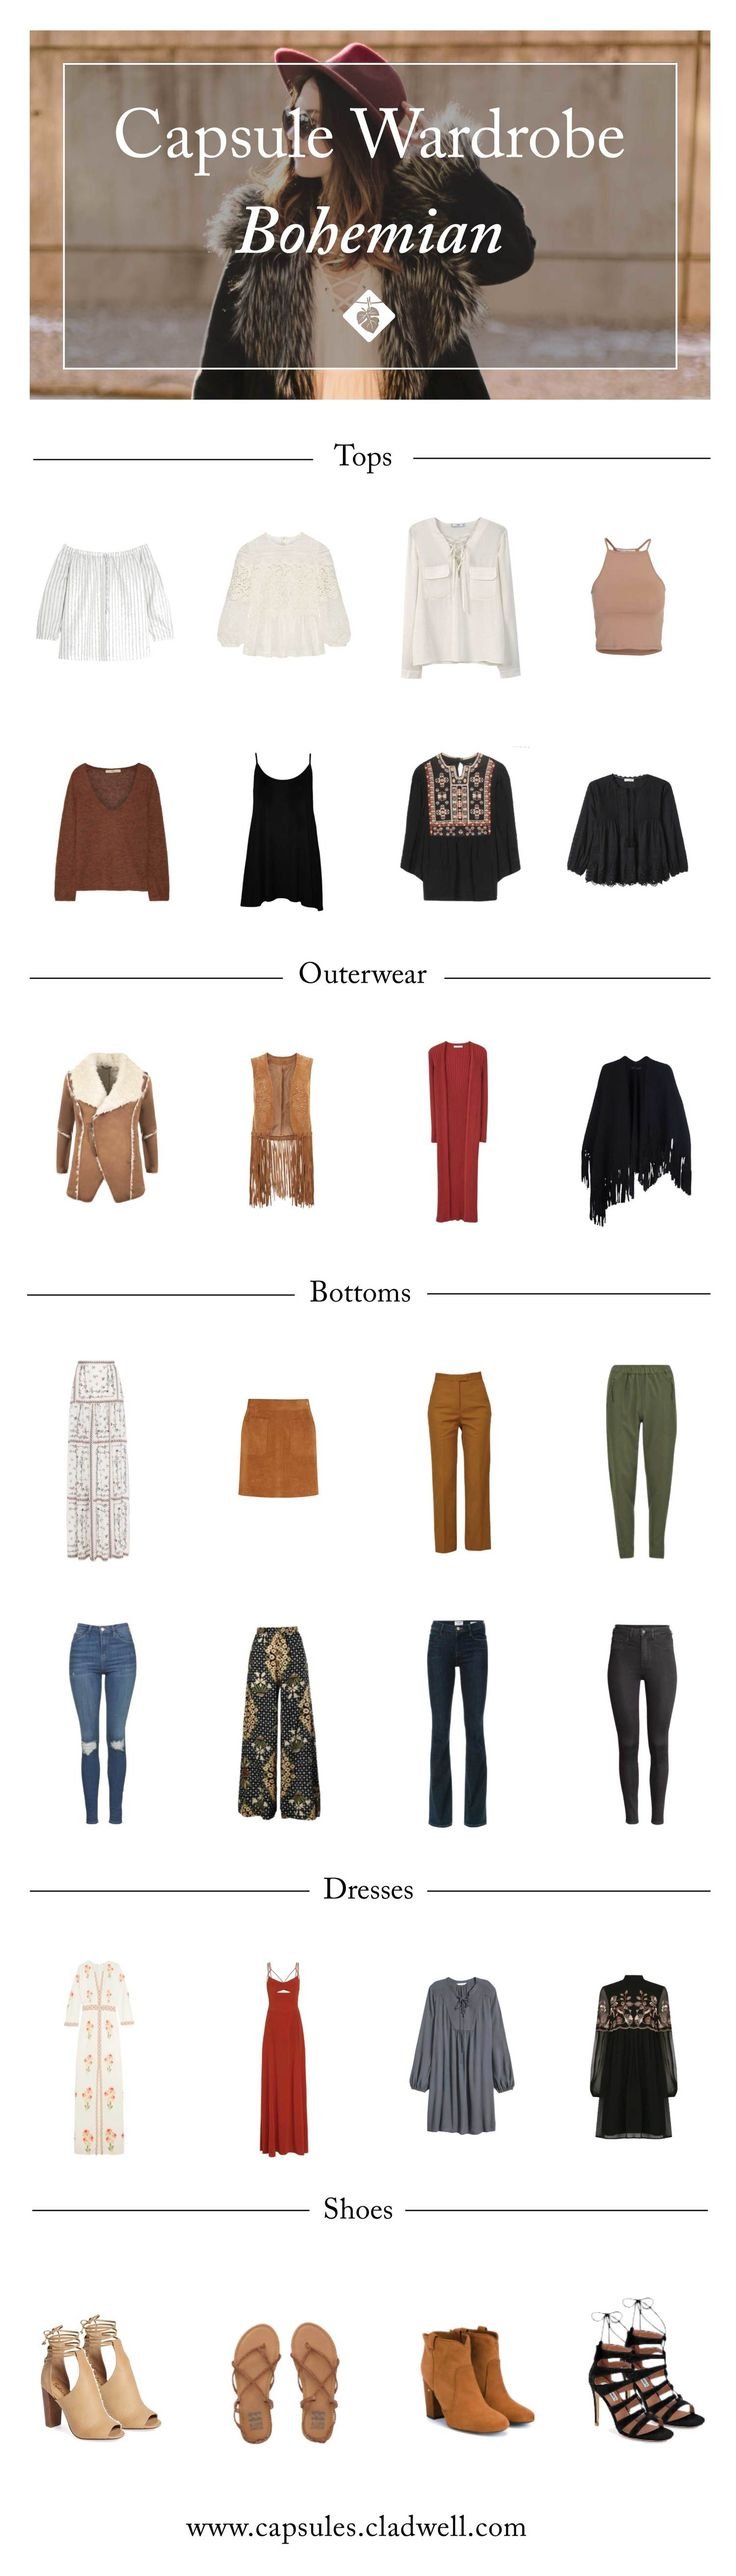 A Capsule for The Bohemian — CLADWELL GUIDE